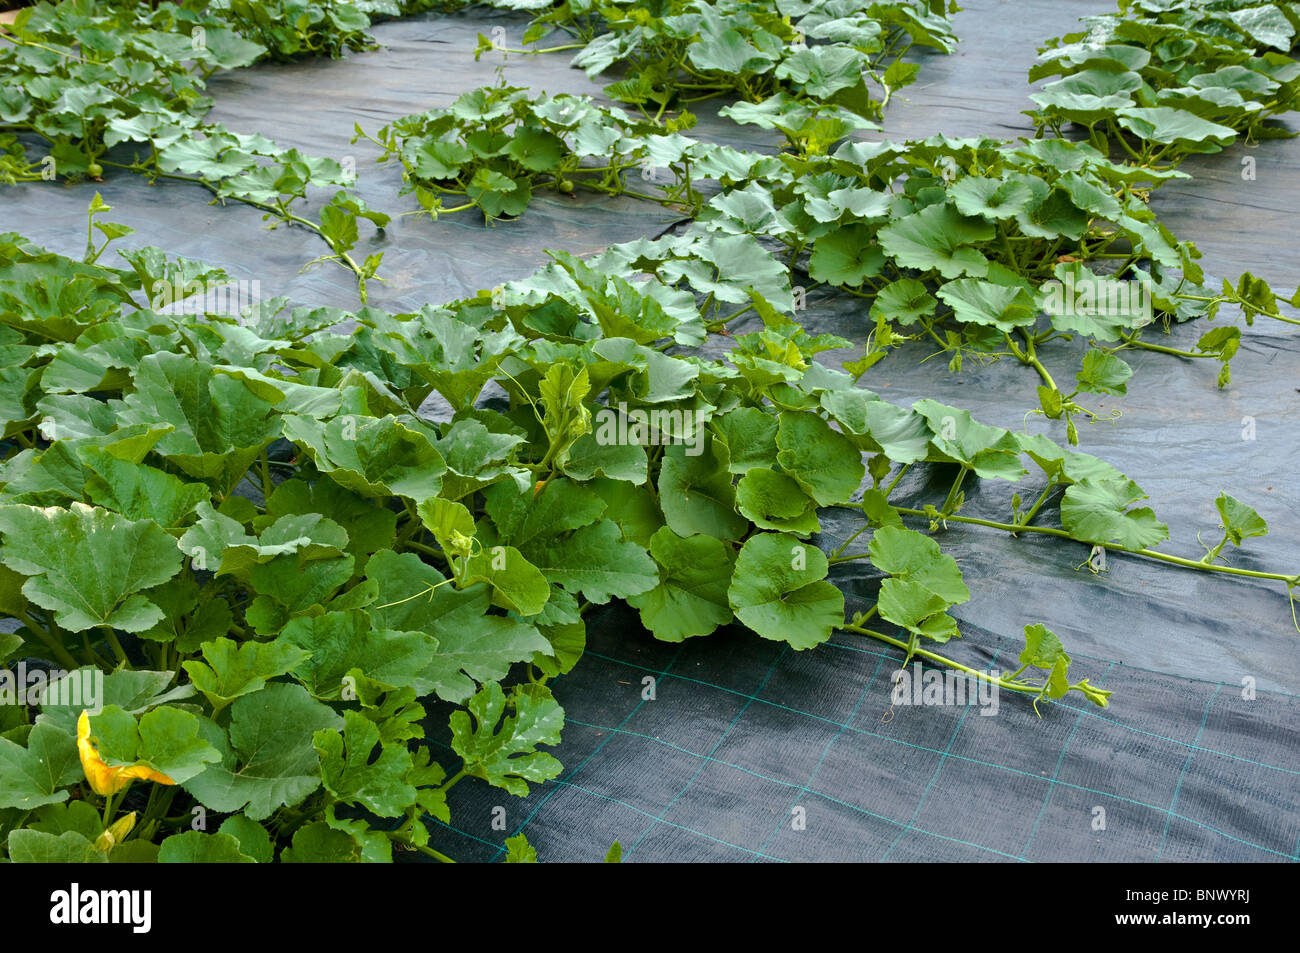 Courgettes growing - note the weed suppressant covering on the ground and through which the courgettes are grown. - Stock Image